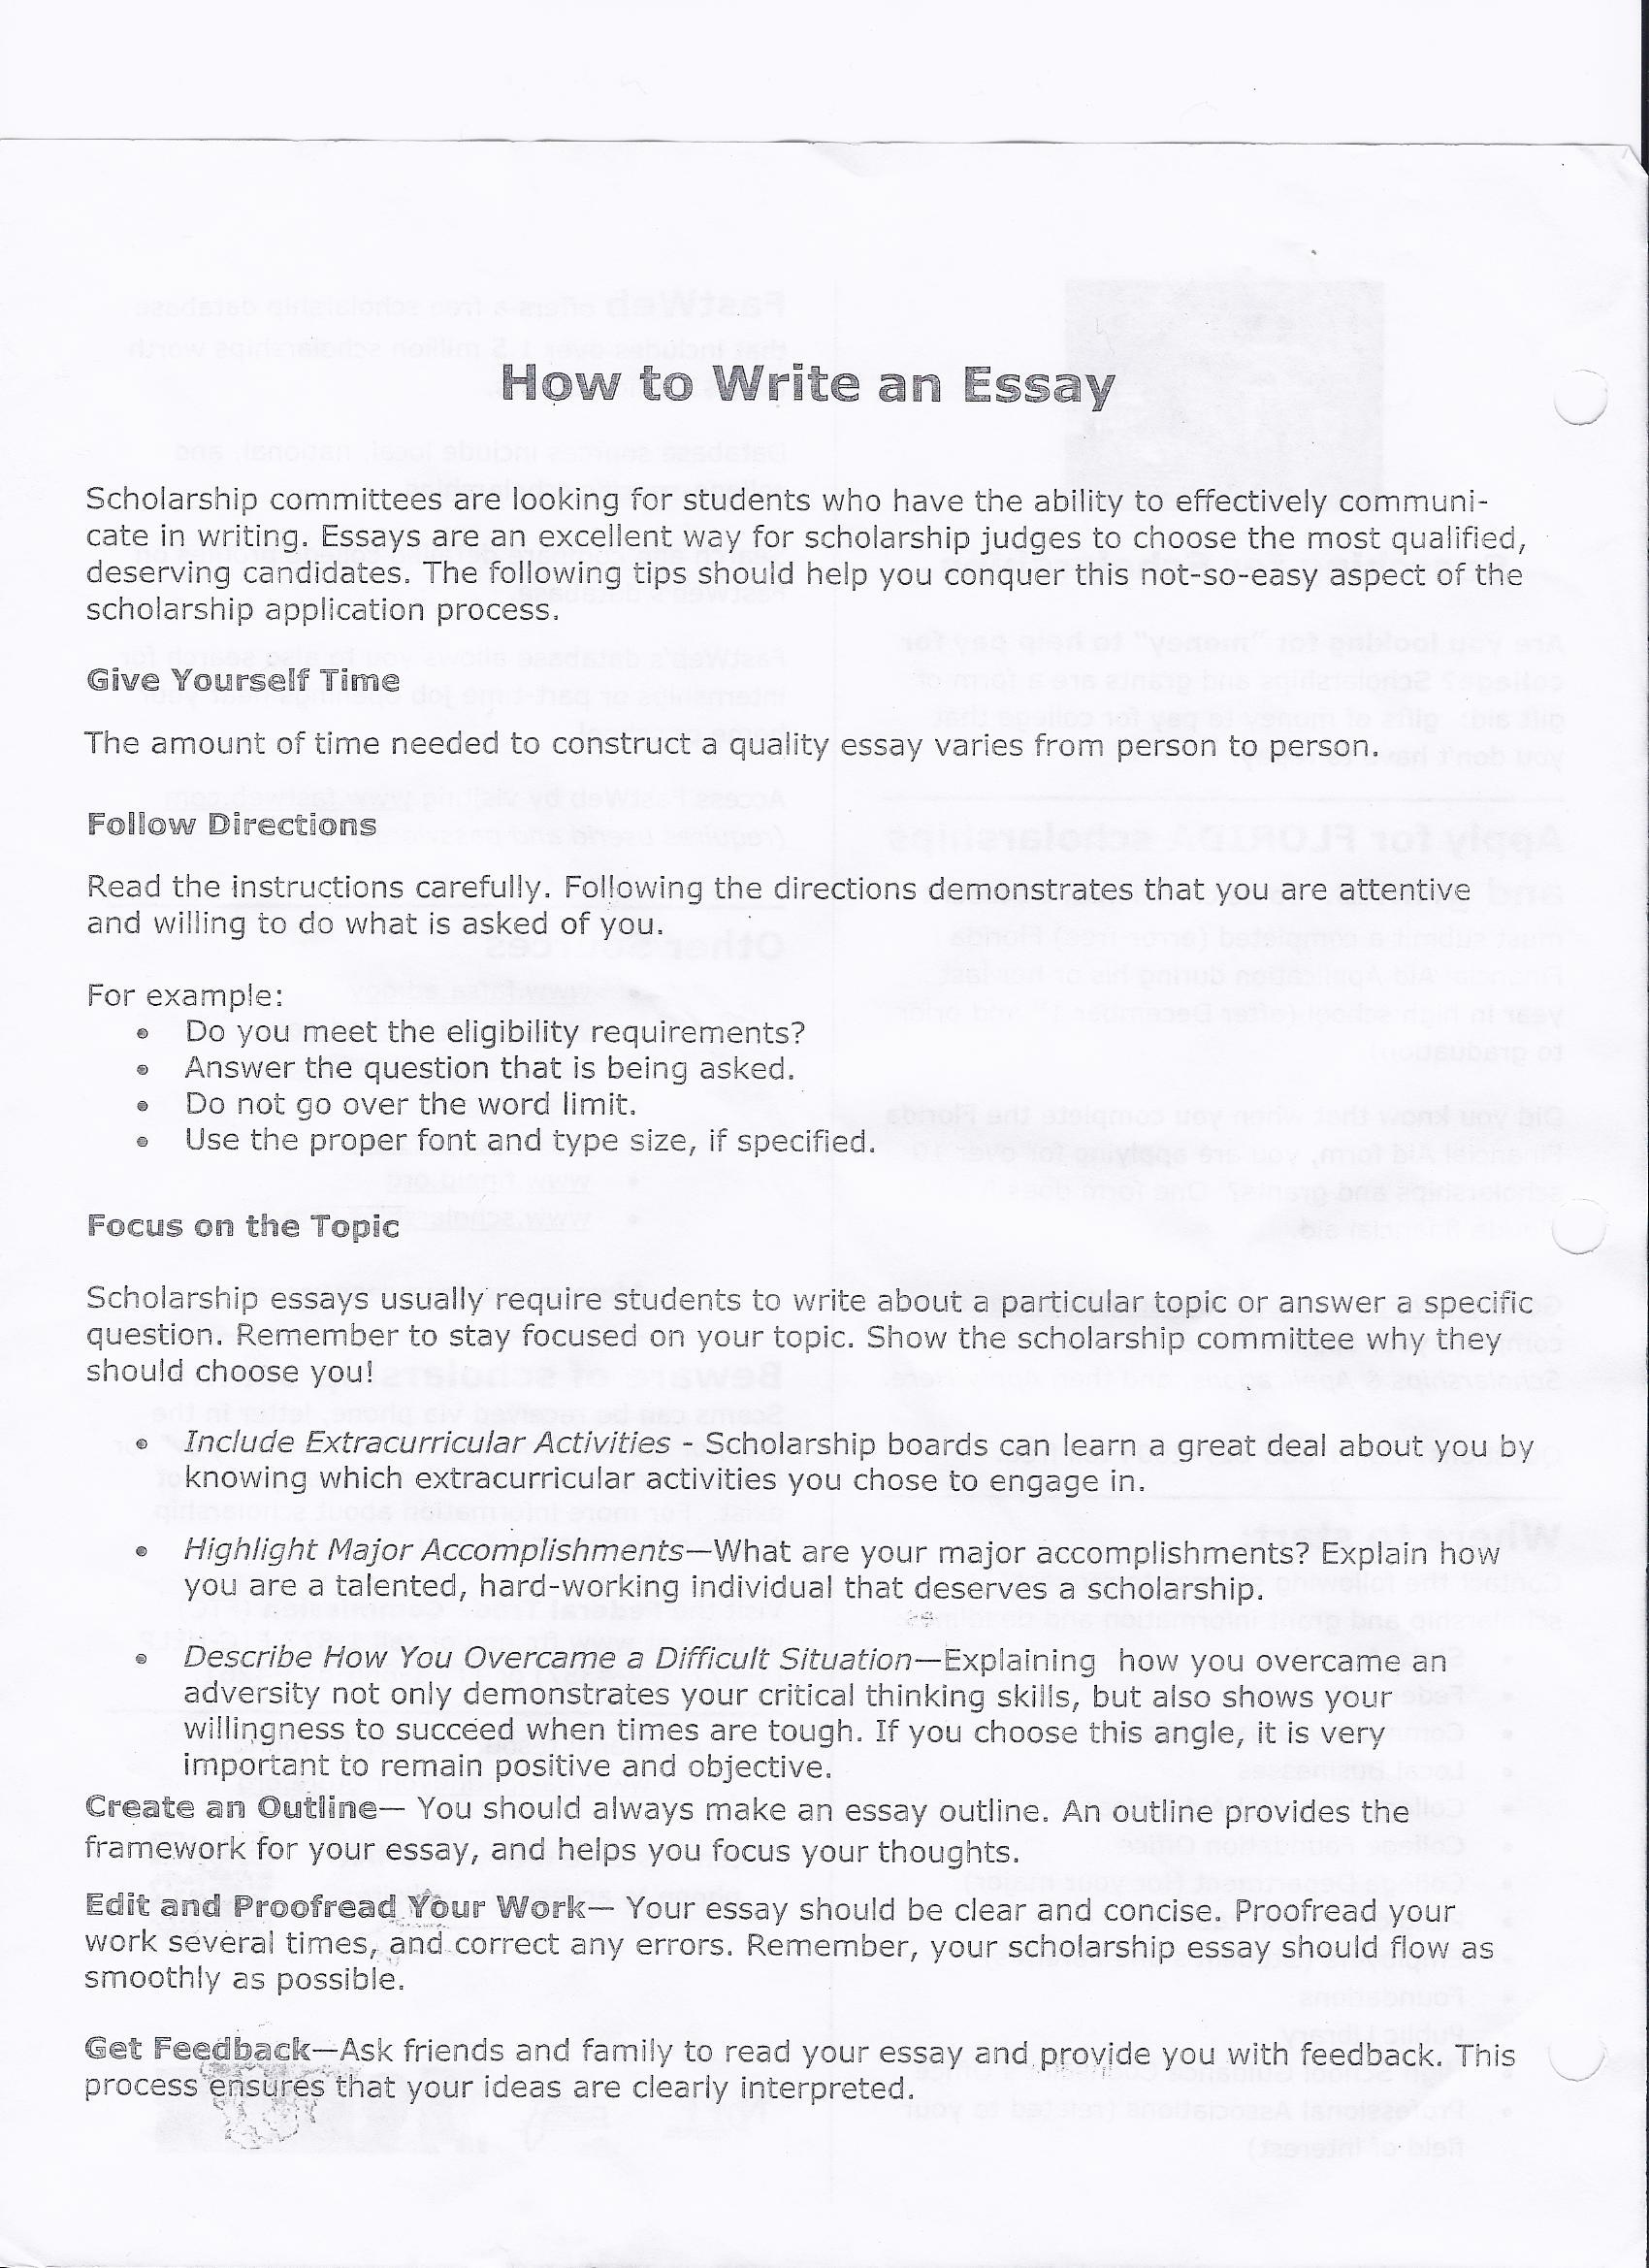 Soapstone Essay Collage Essay Collage Essay Collage Essay Jonathon